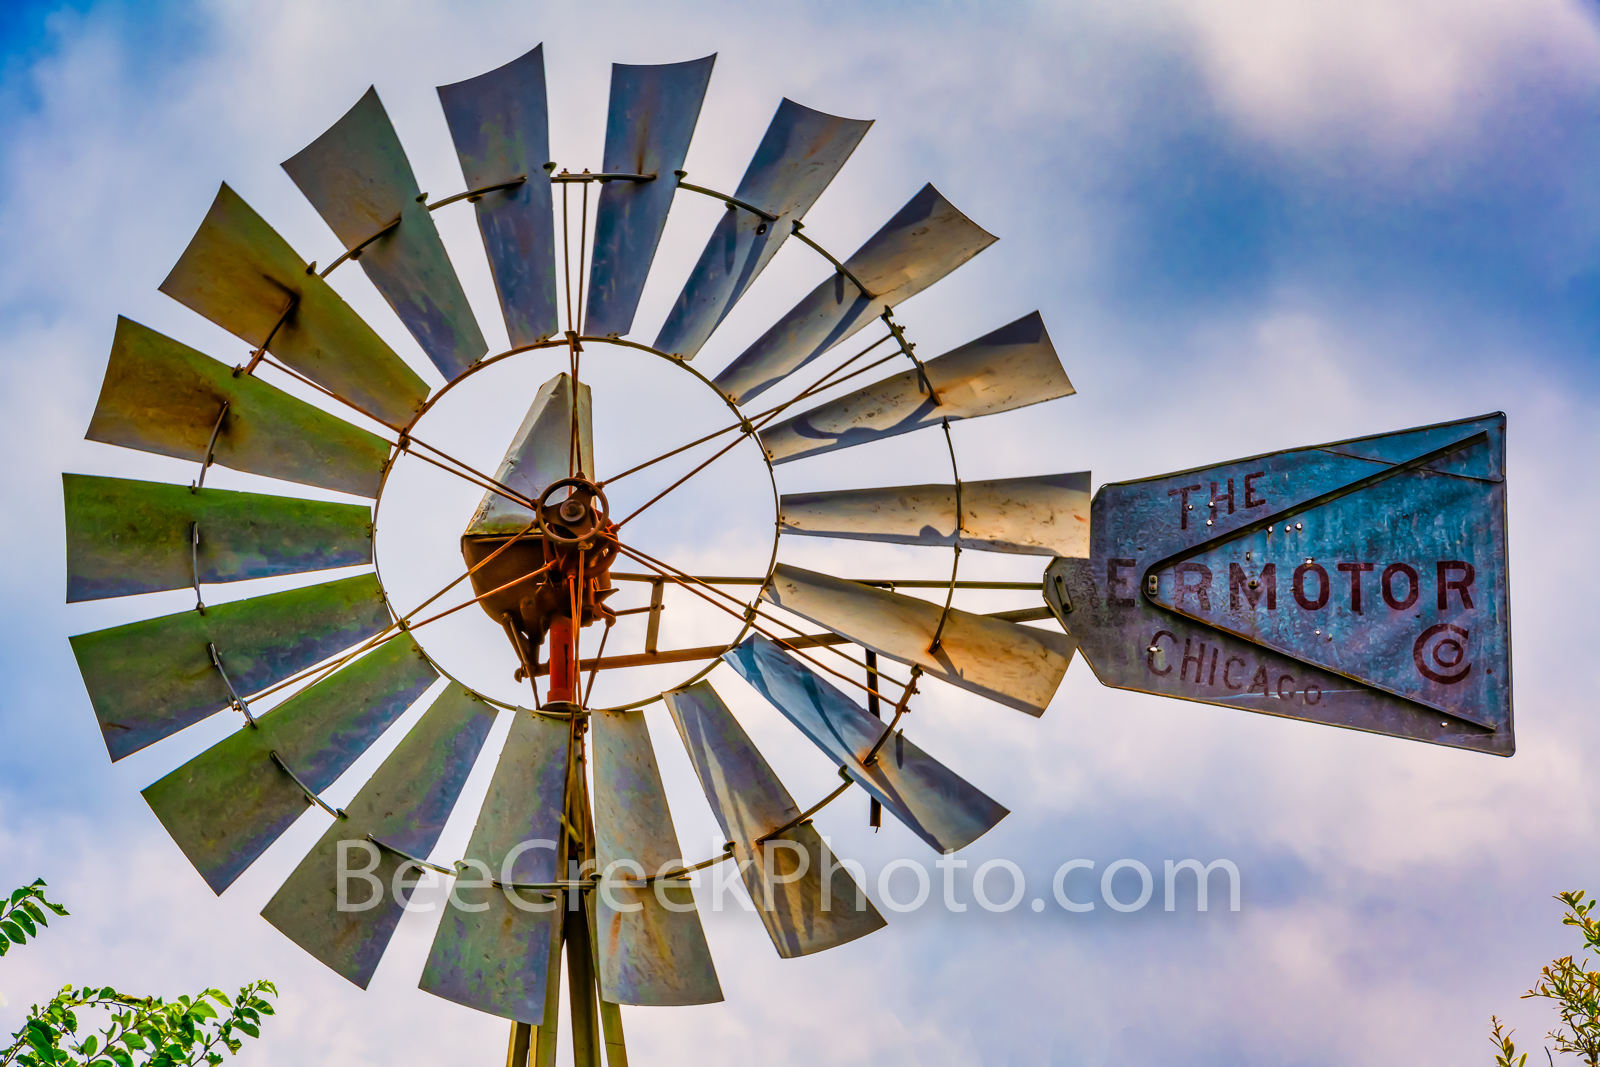 Rural Texas Hill Country Windmill - A texas windmill with cloudy skies in color showing the weathered blades and vanes of years...